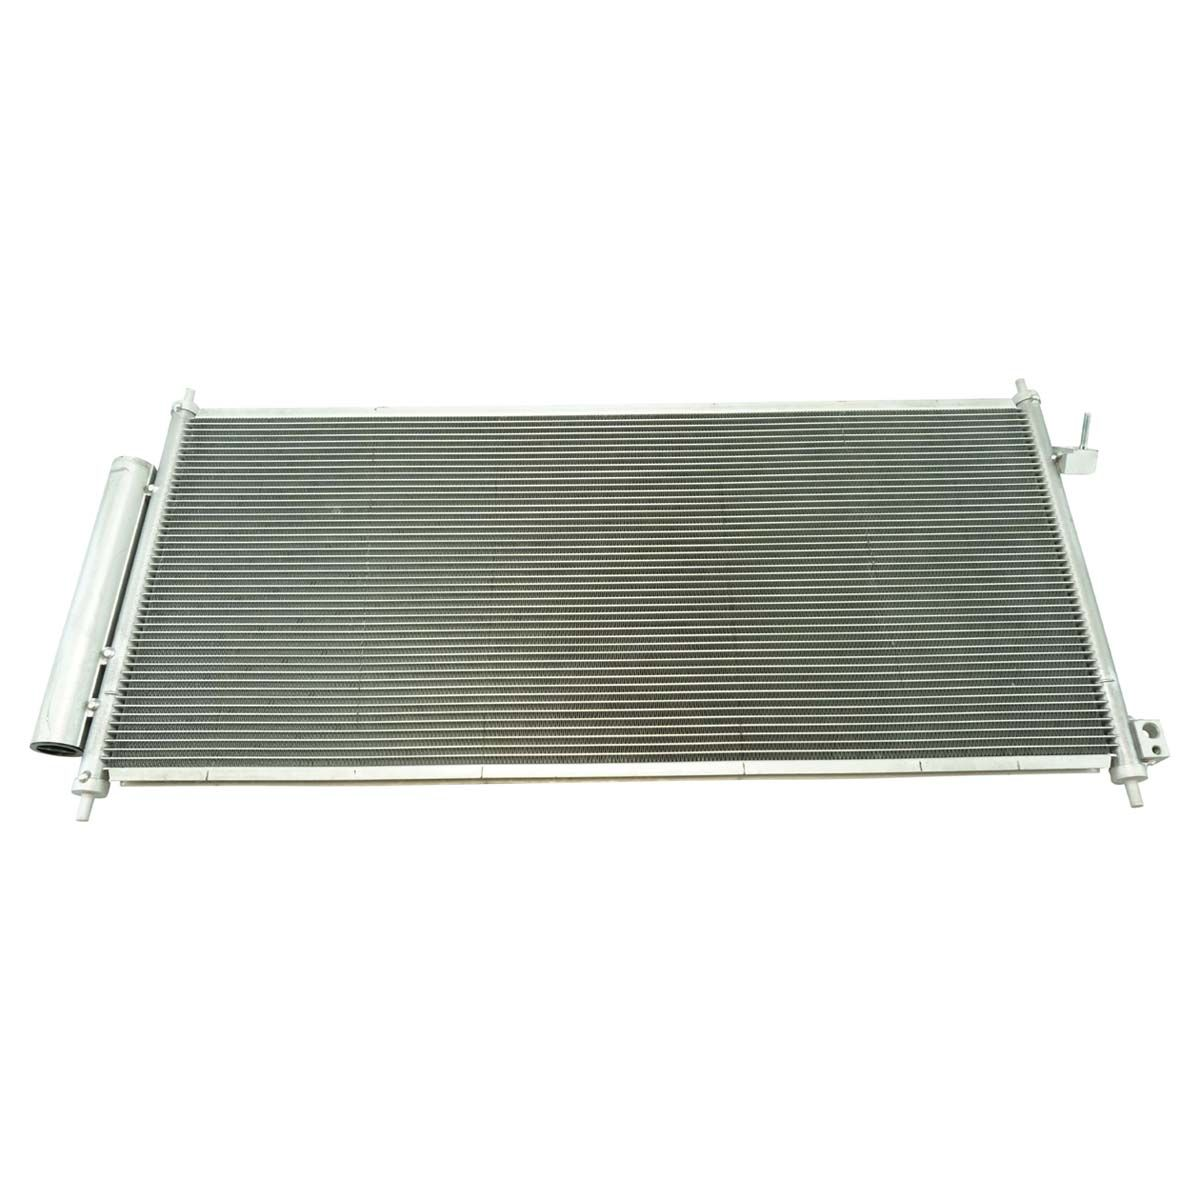 A//C AC Condenser New for Honda Fit 2009-2014 7-3783